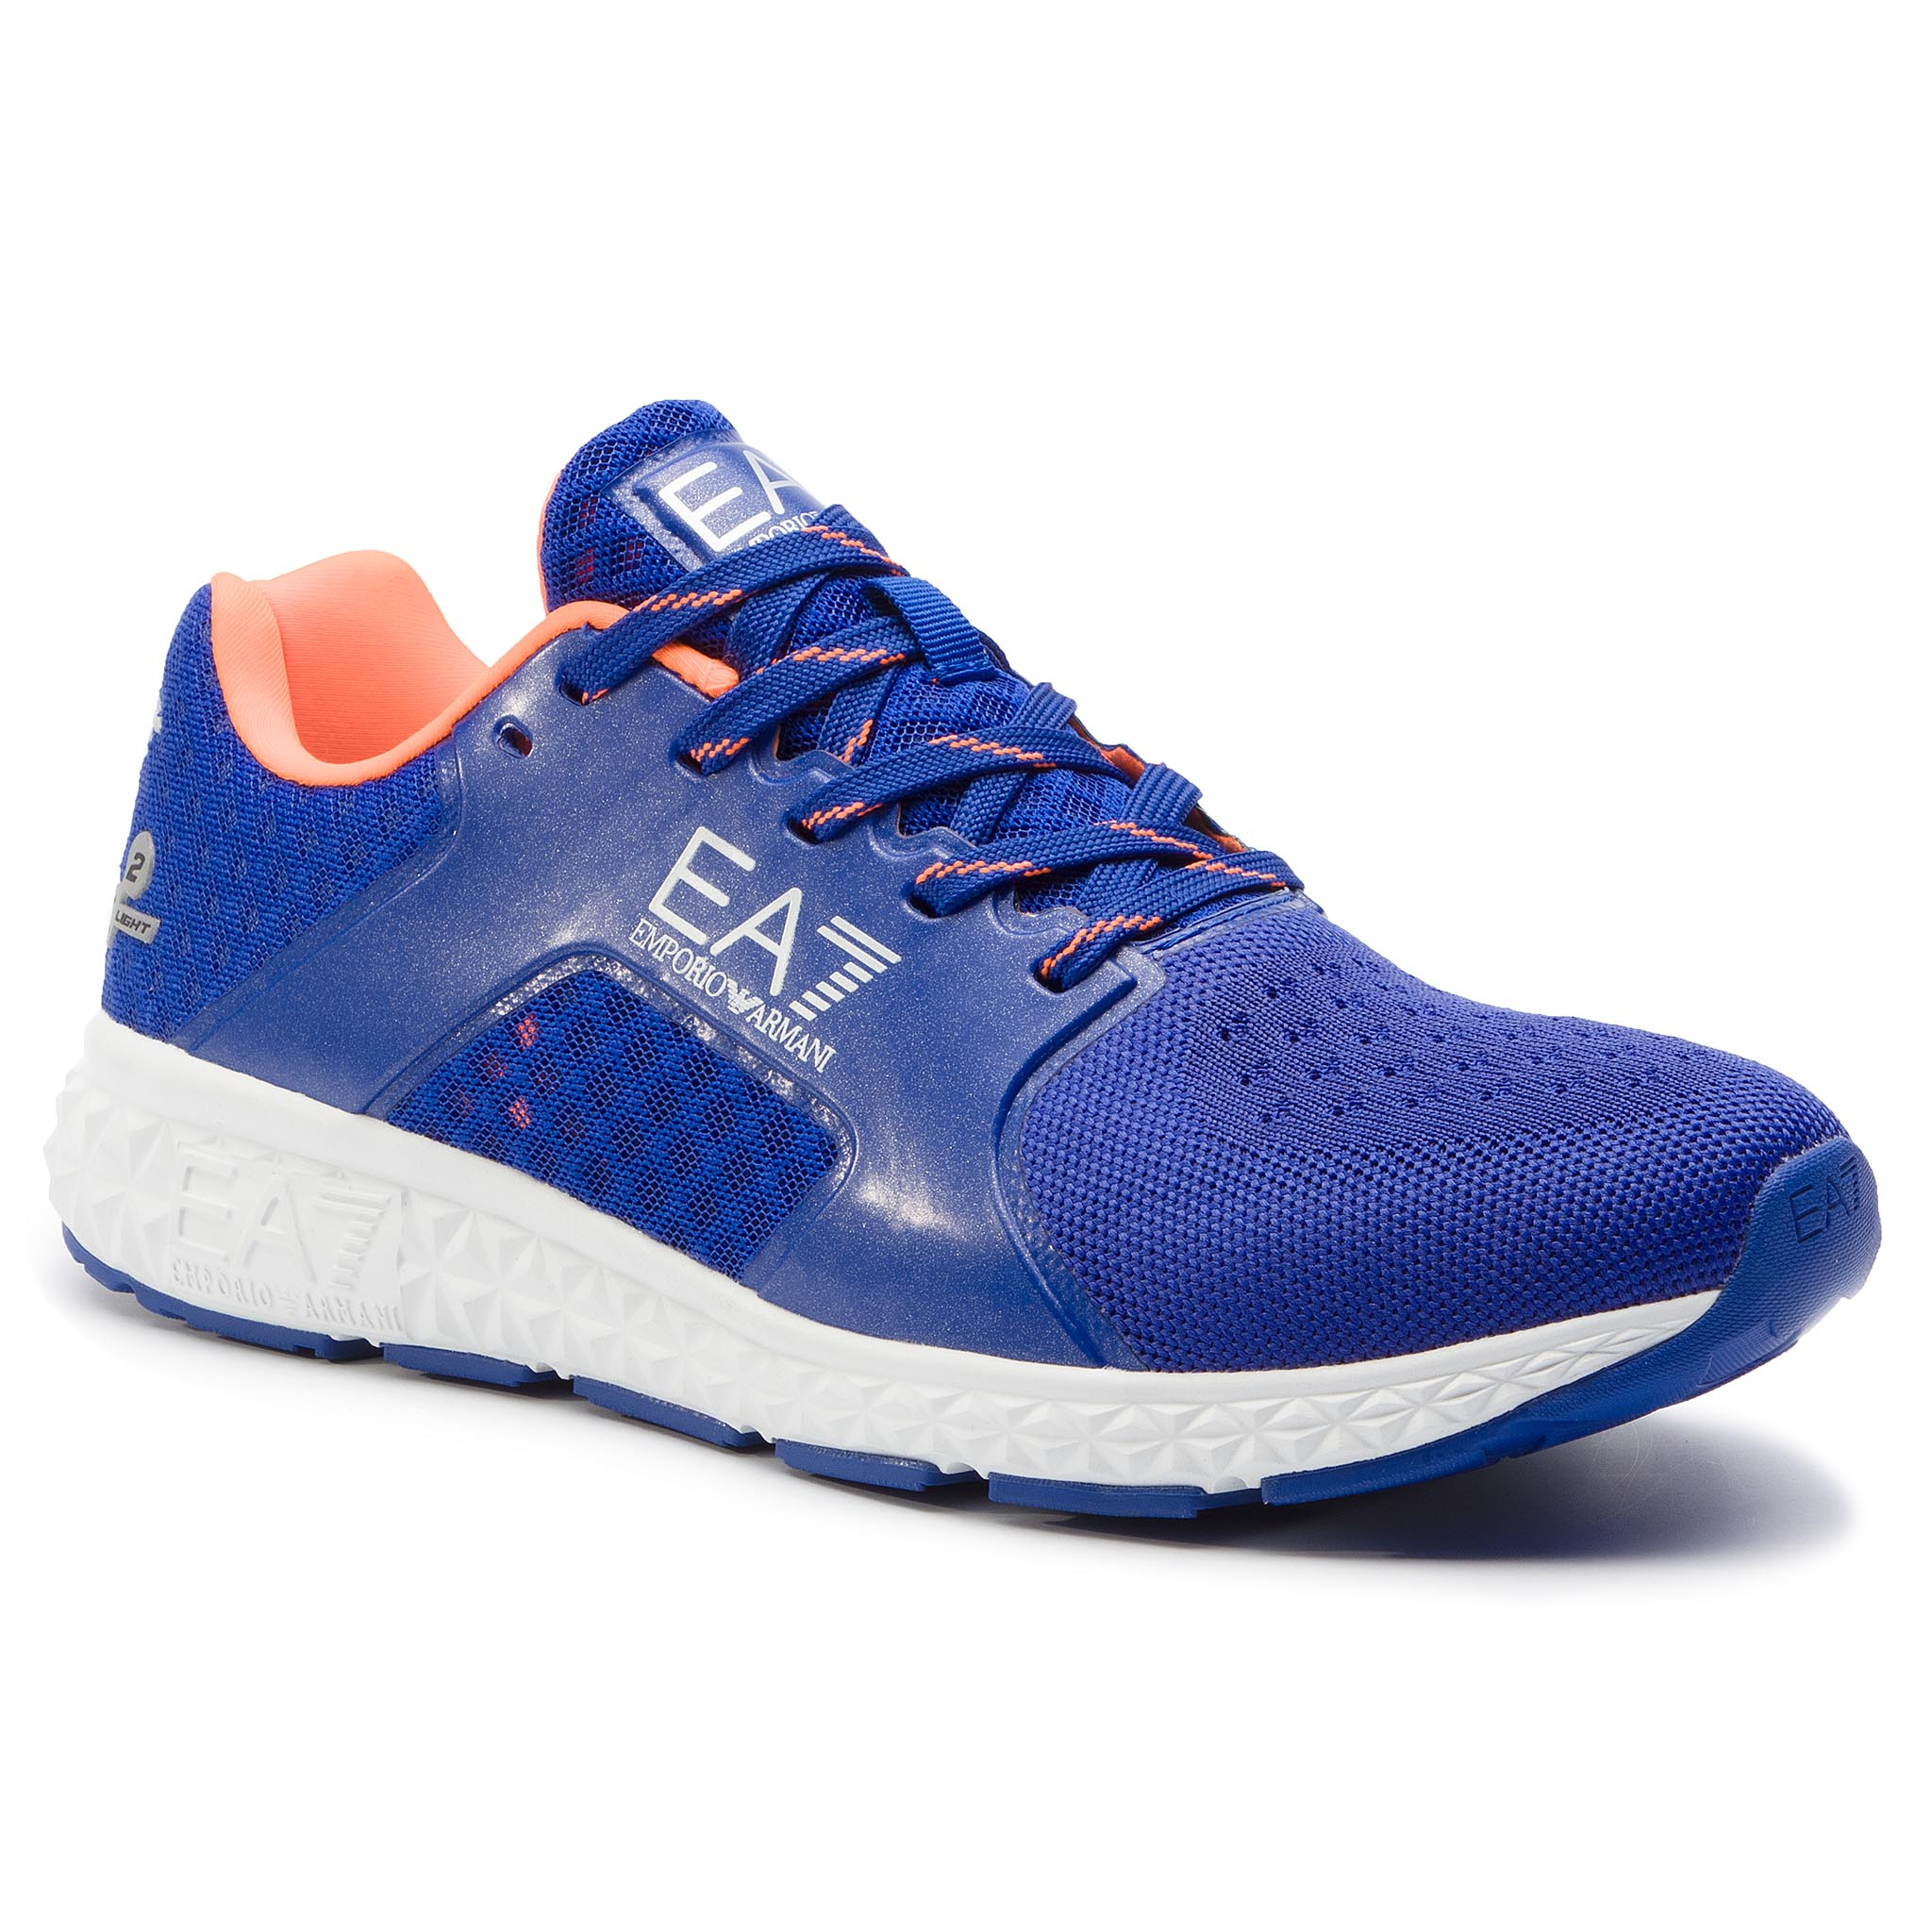 Sneakers EA7 EMPORIO ARMANI - X8X011 XK044 00024 Surf The Web